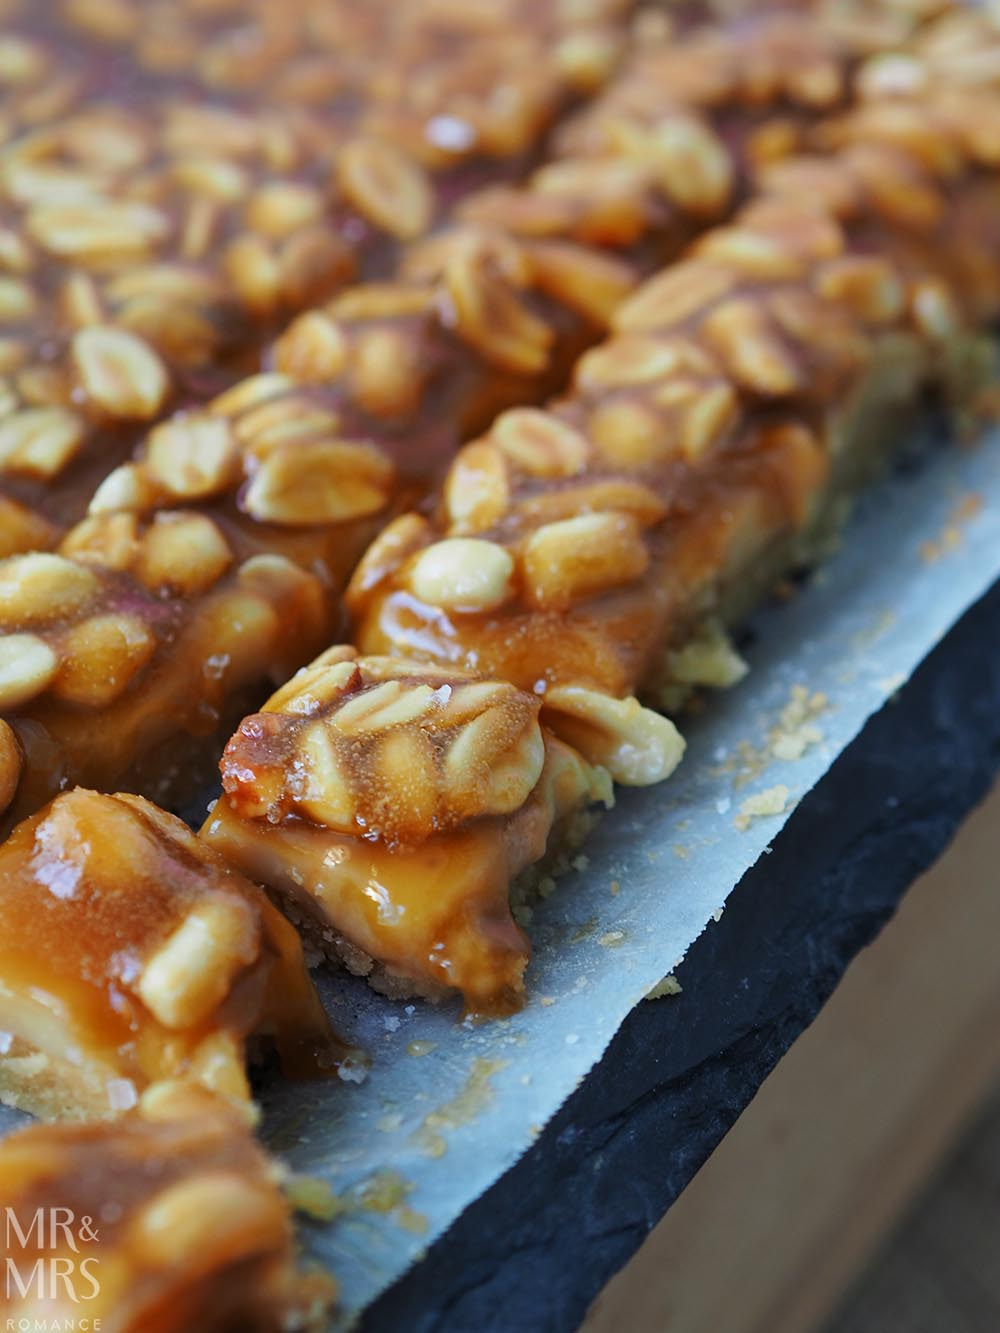 Salted caramel peanut slice recipe